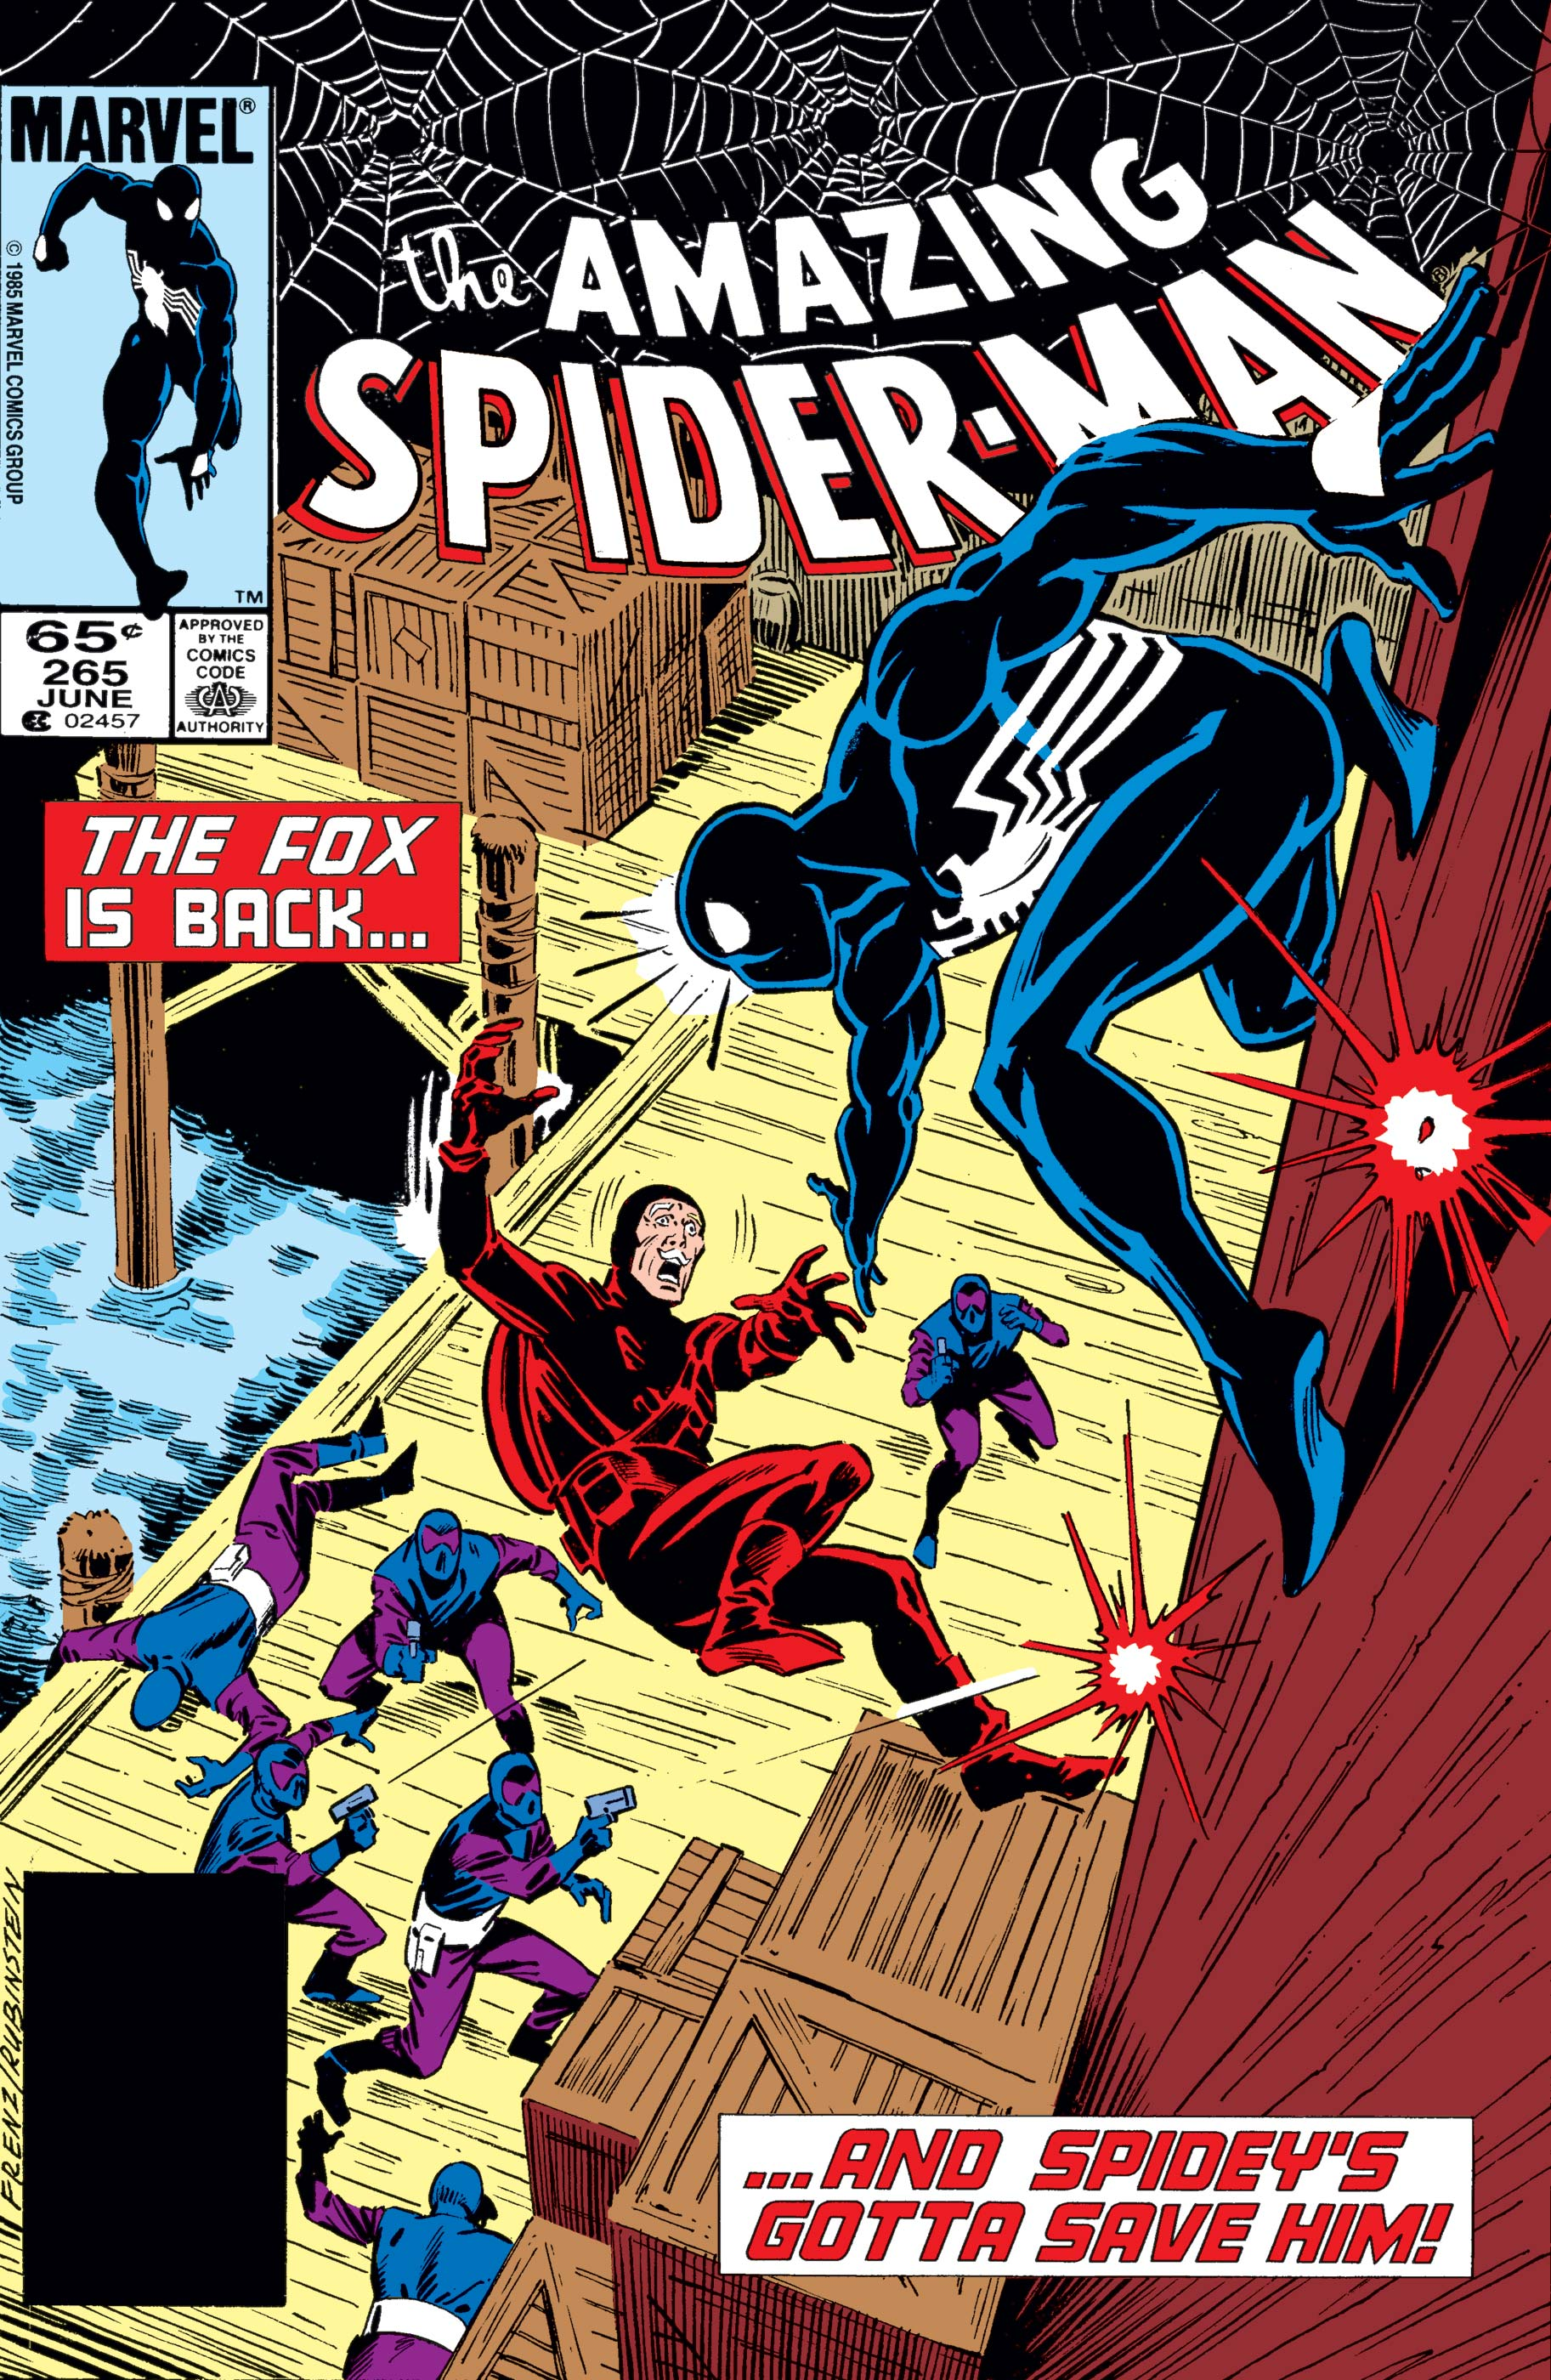 The Amazing Spider-Man (1963) #265